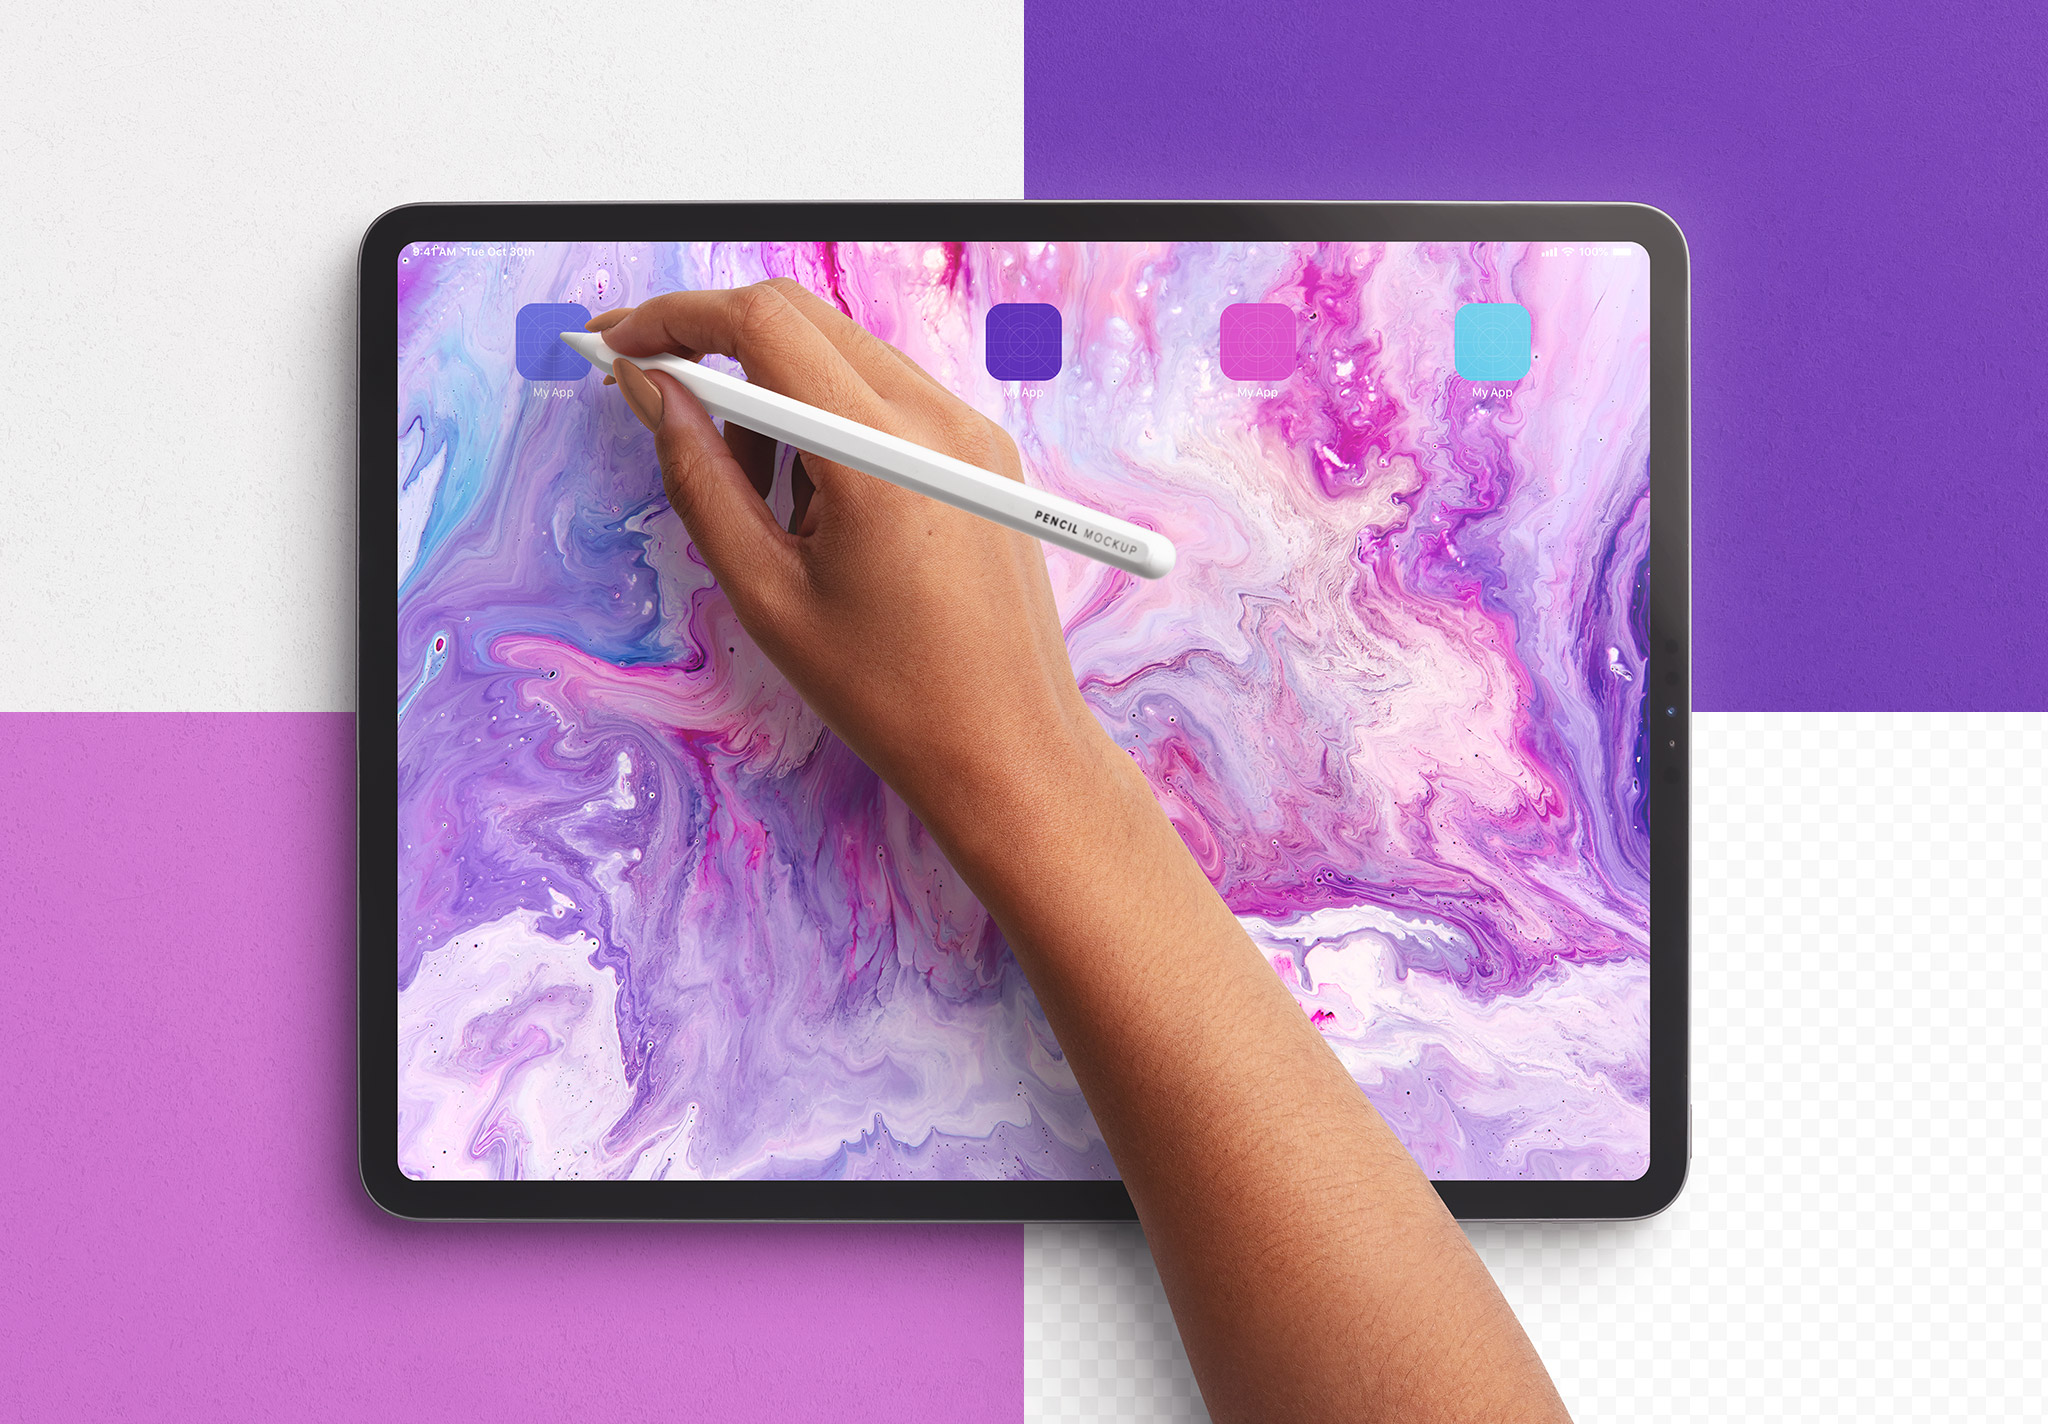 Tablet Pro Mockup with Hand Holding Pencil Image02